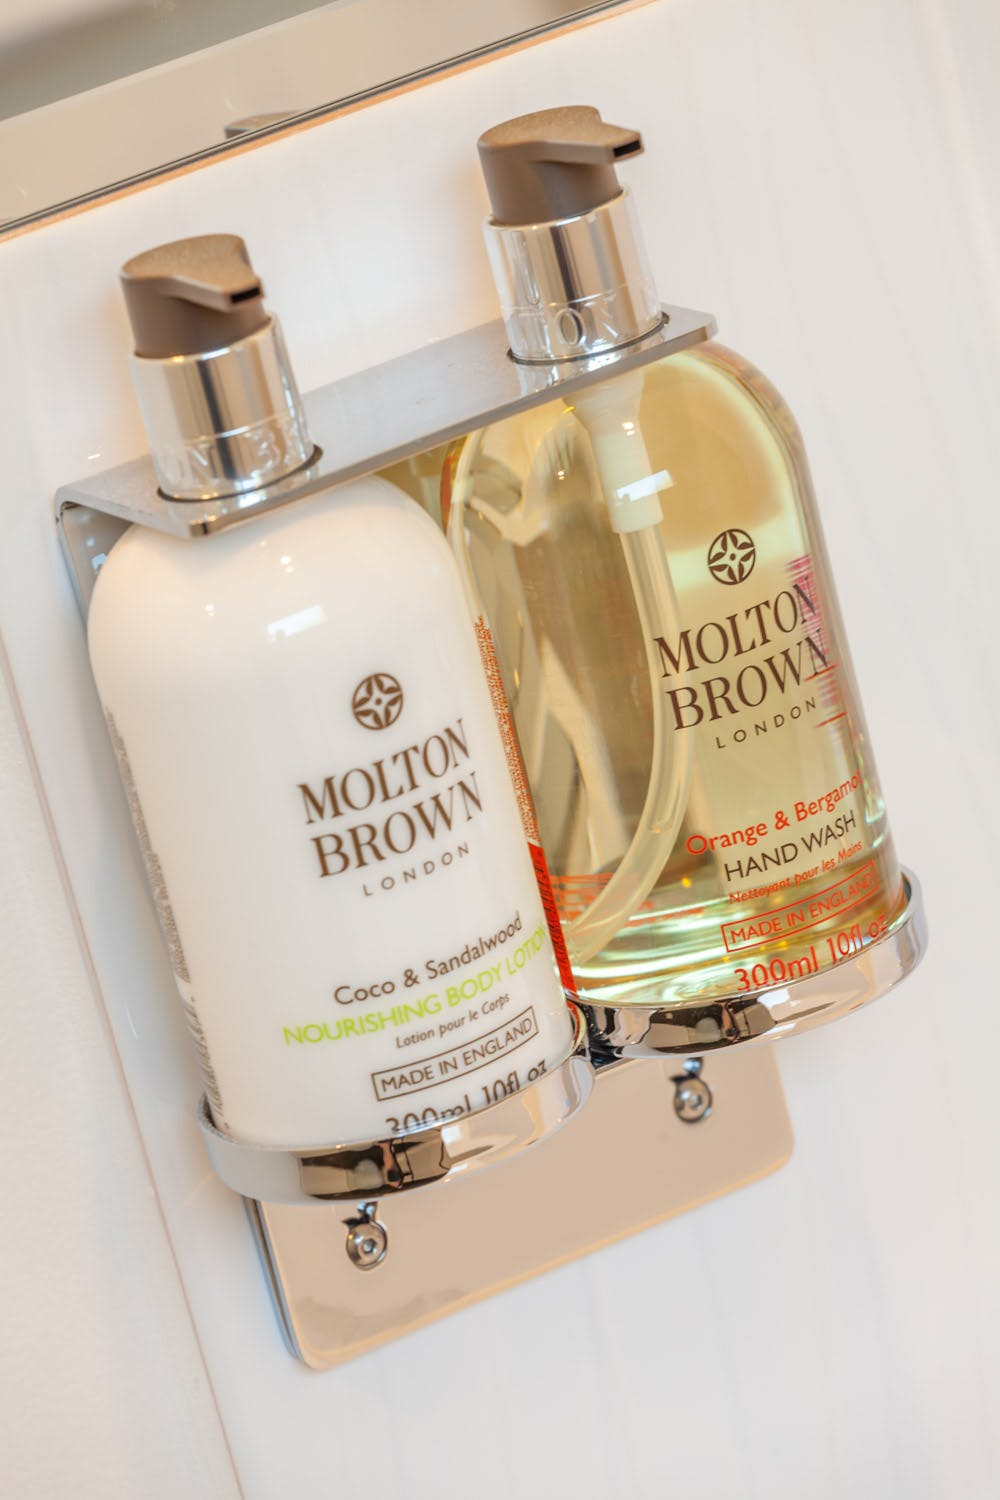 Molton Brown toiletries